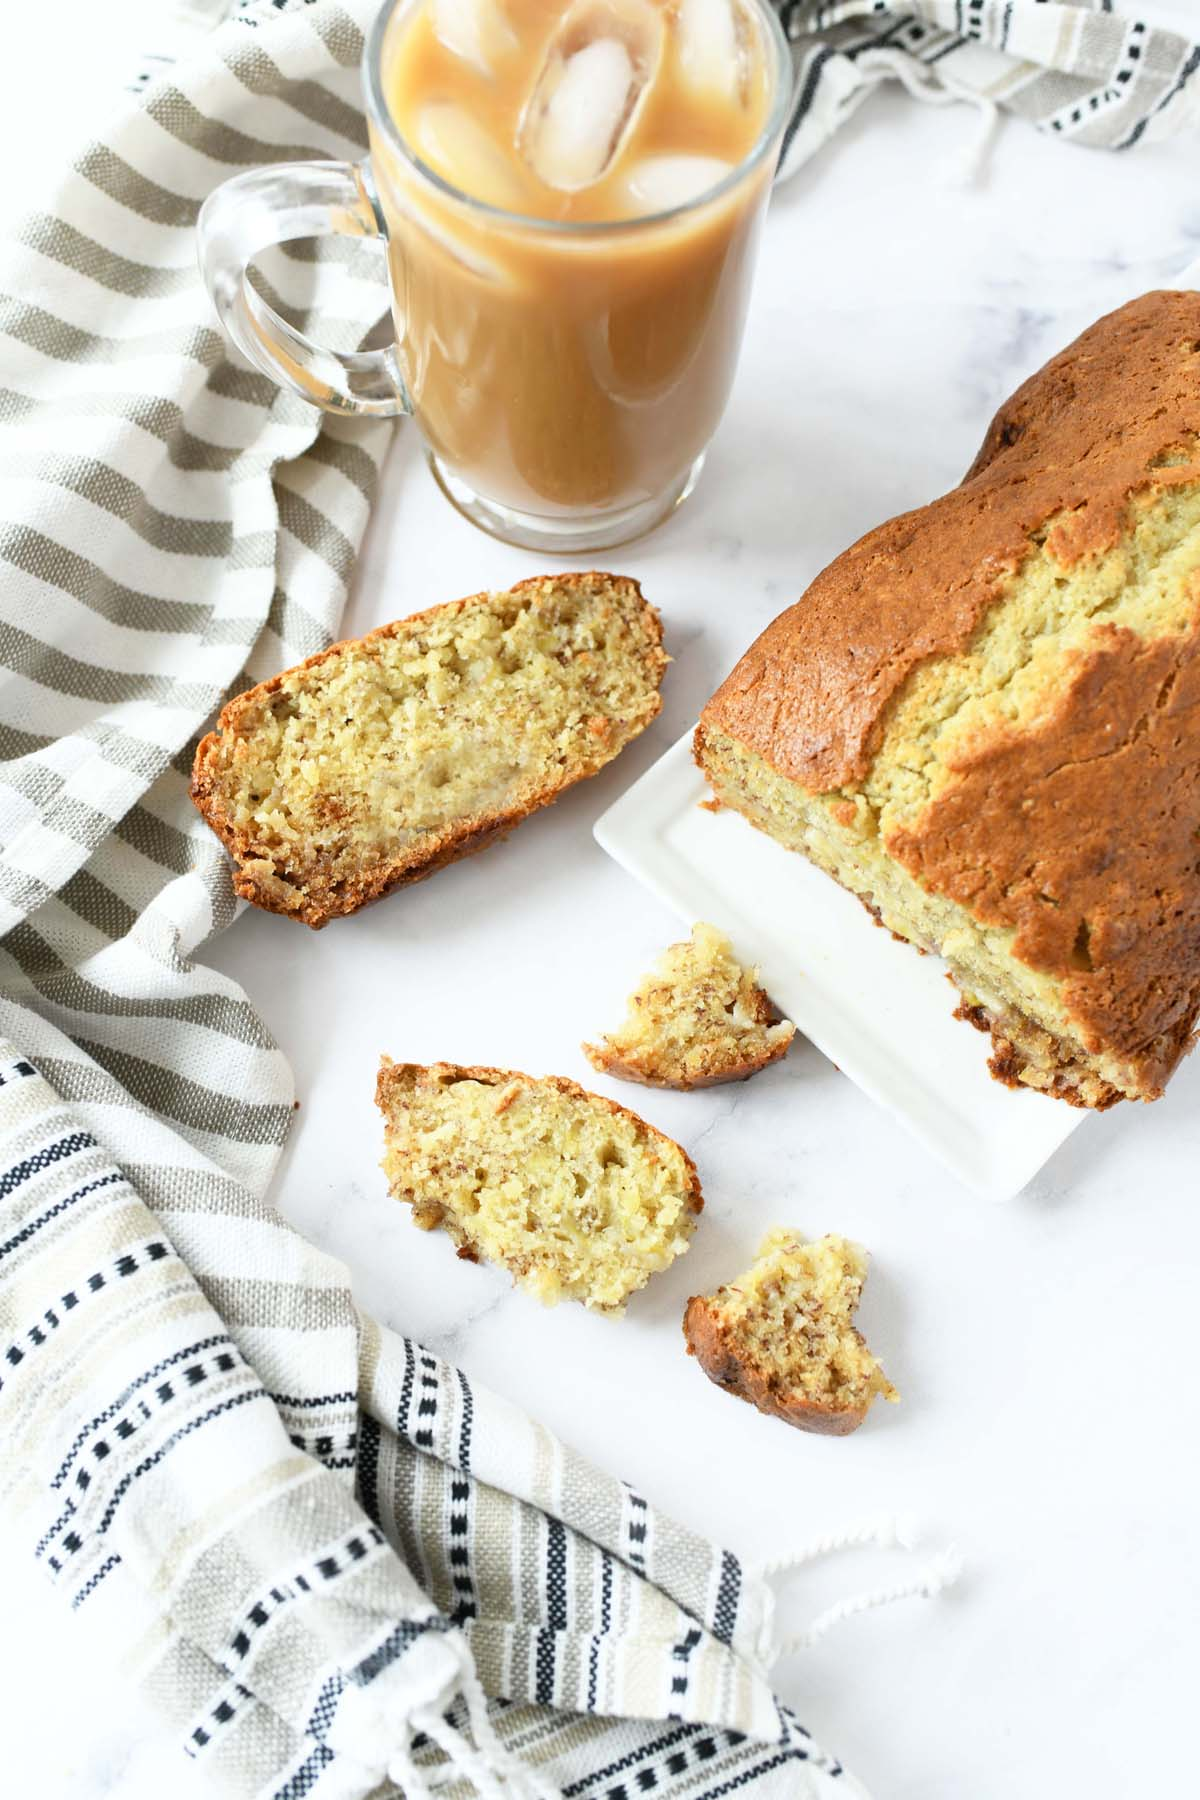 Banana Bread made with Sour Cream. Bread is sliced on a white marble table with a cup of coffee nearby.